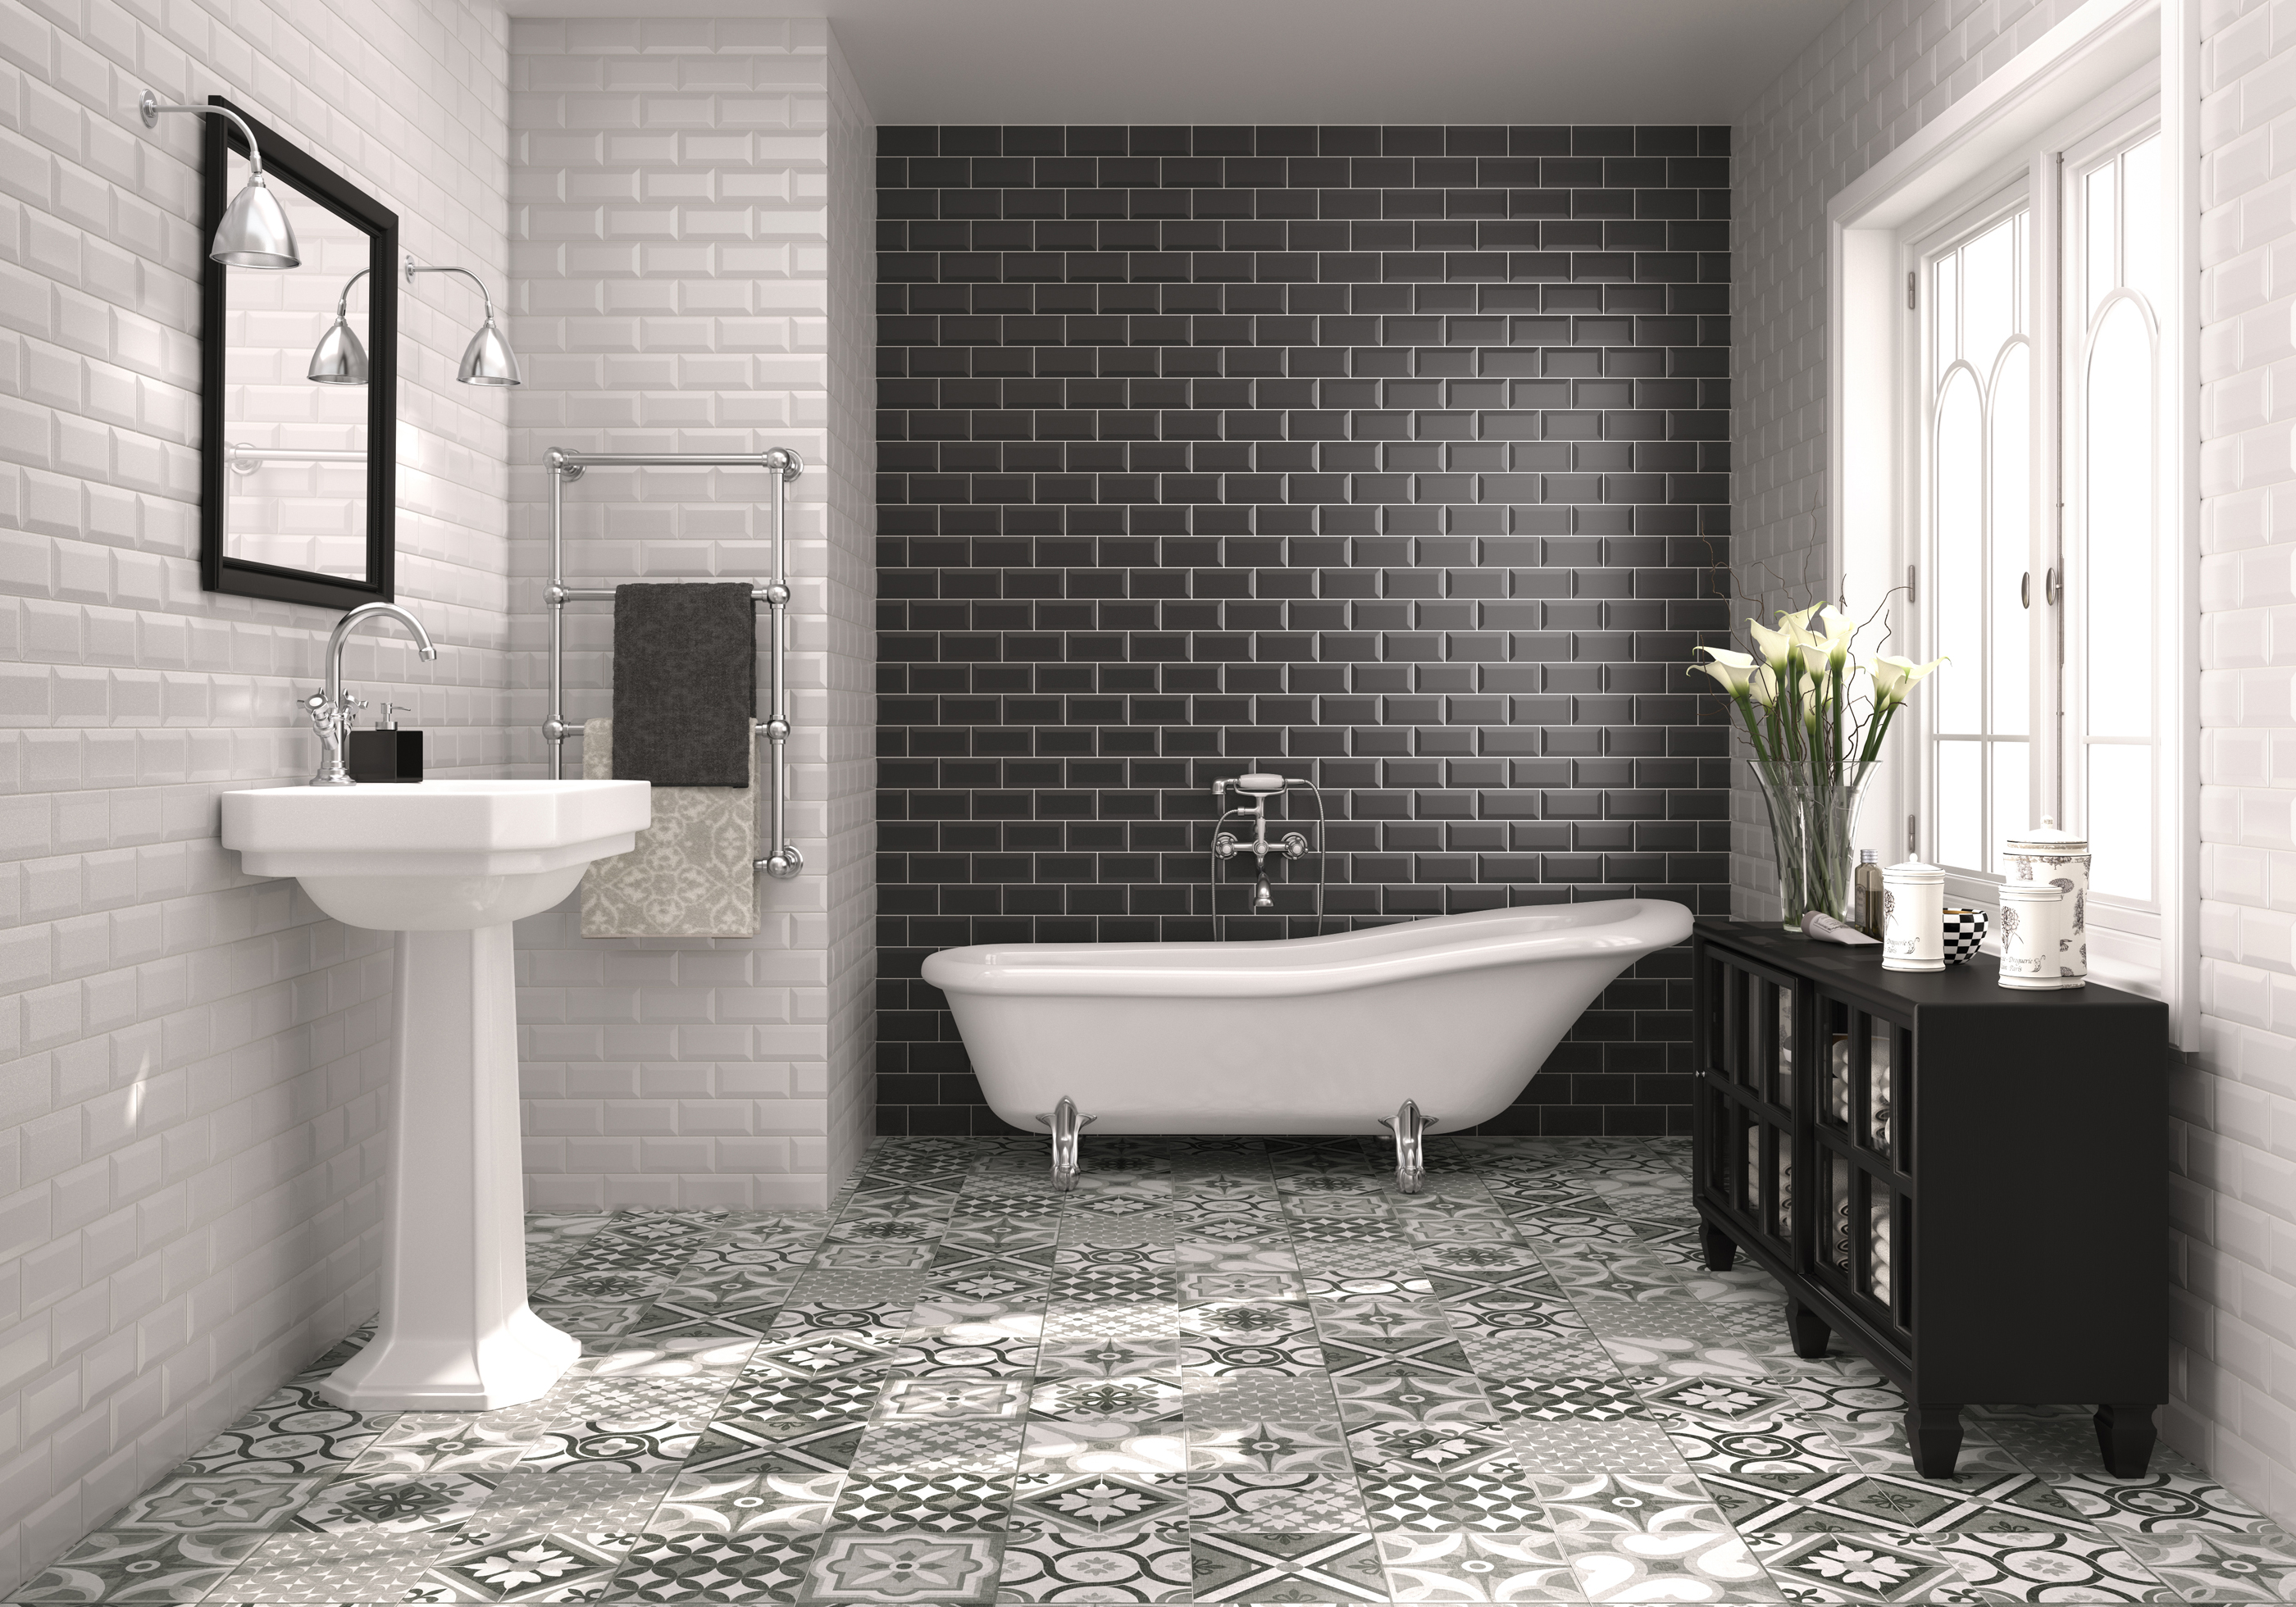 How To Make A Statement With Bold Bathroom Tiles Reader S Digest